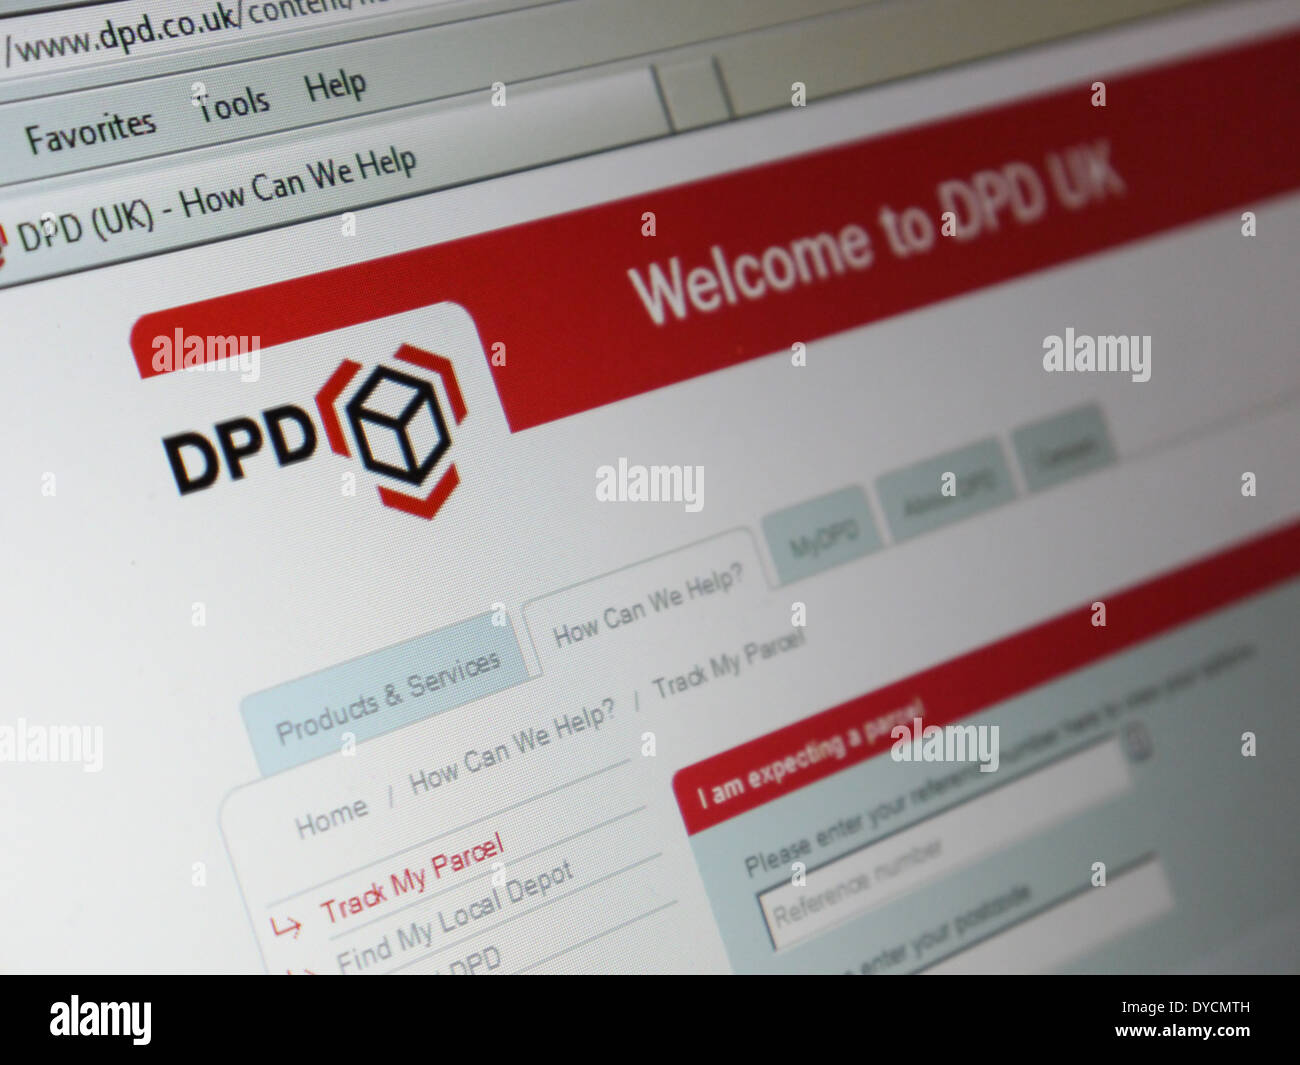 dpd parcel delivery shipping service website - Stock Image